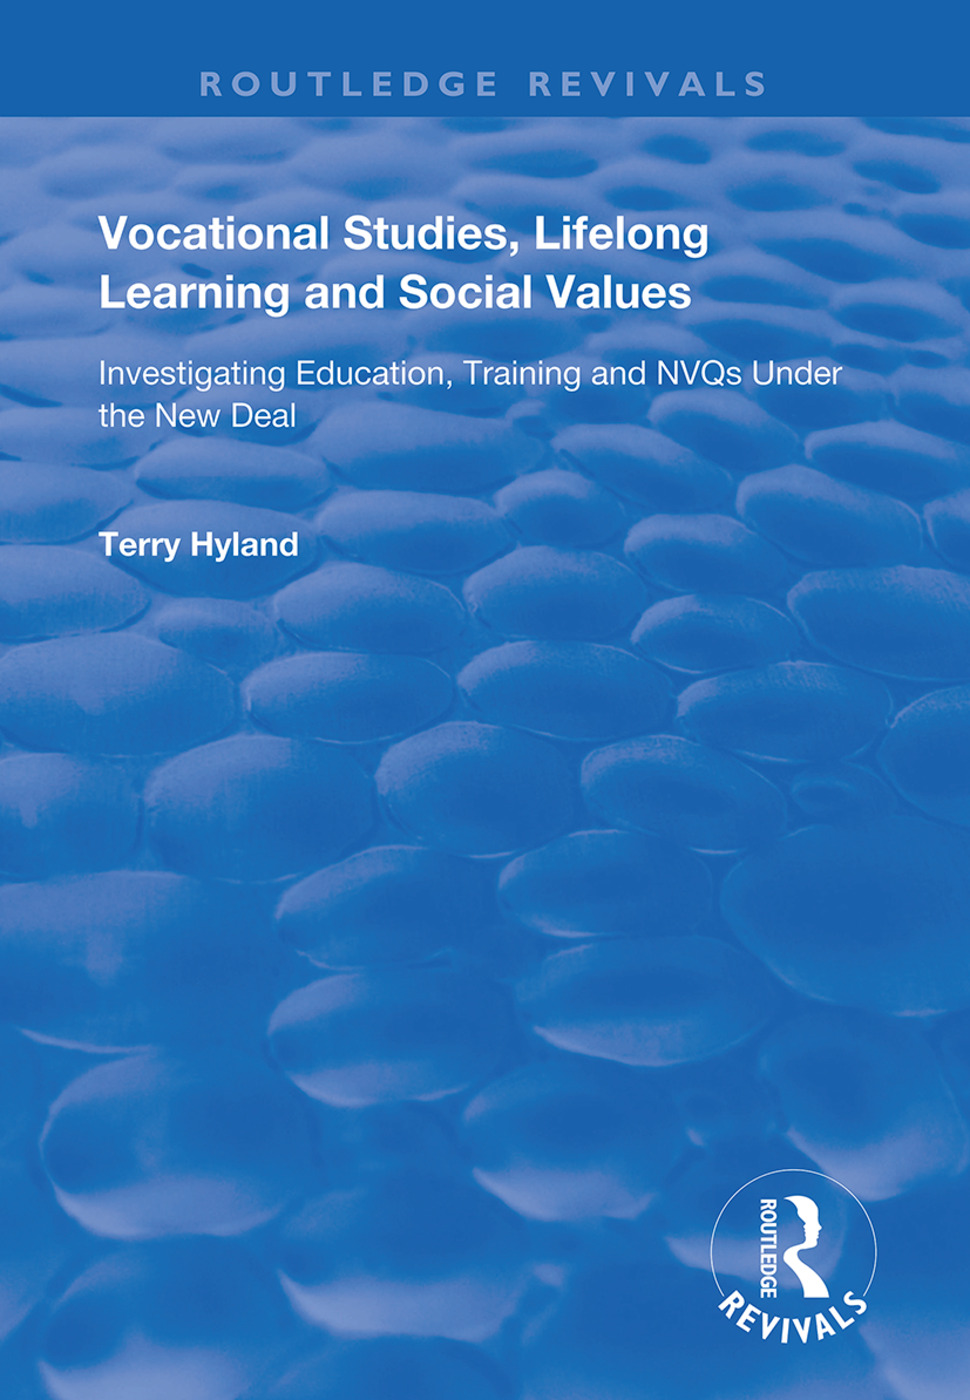 Vocational Studies, Lifelong Learning and Social Values: Investigating Education, Training and NVQs Under the New Deal book cover